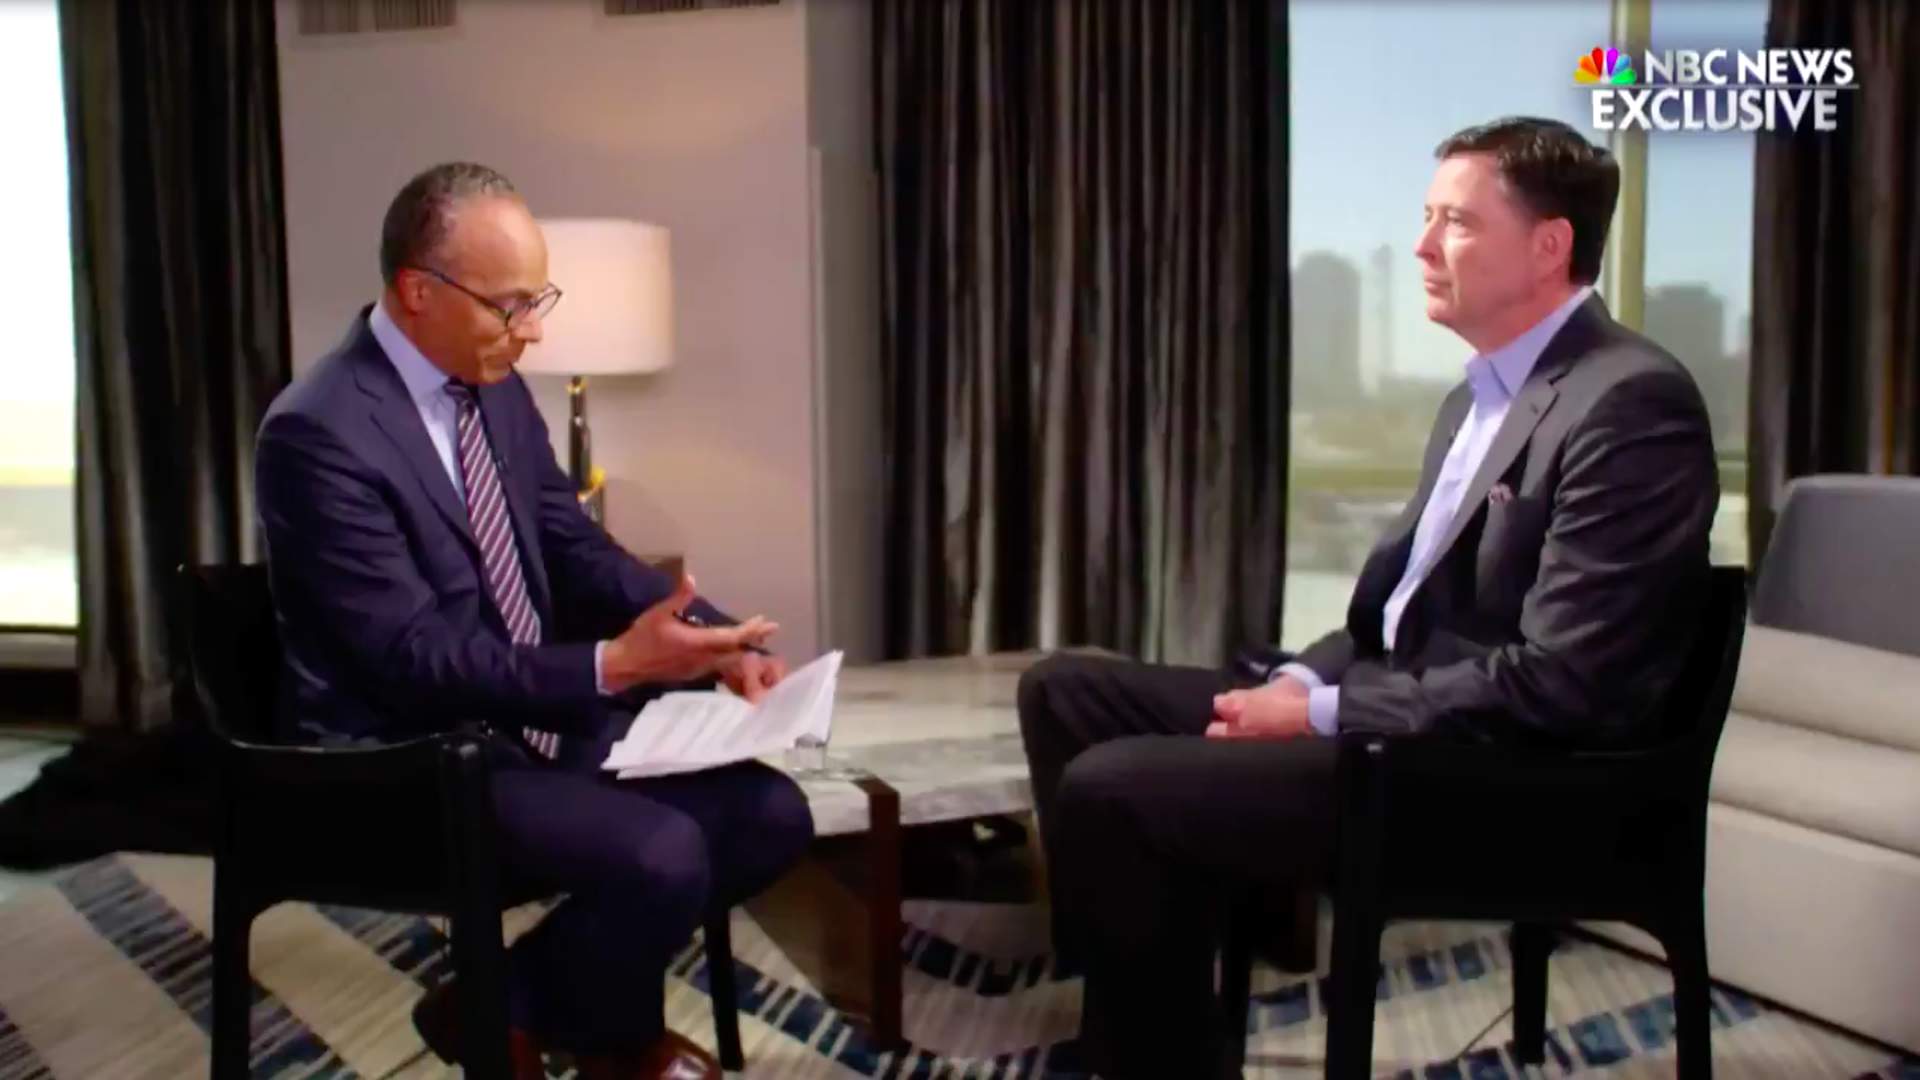 Former FBI Director James Comey and NBC Nightly News anchor Lester Holt